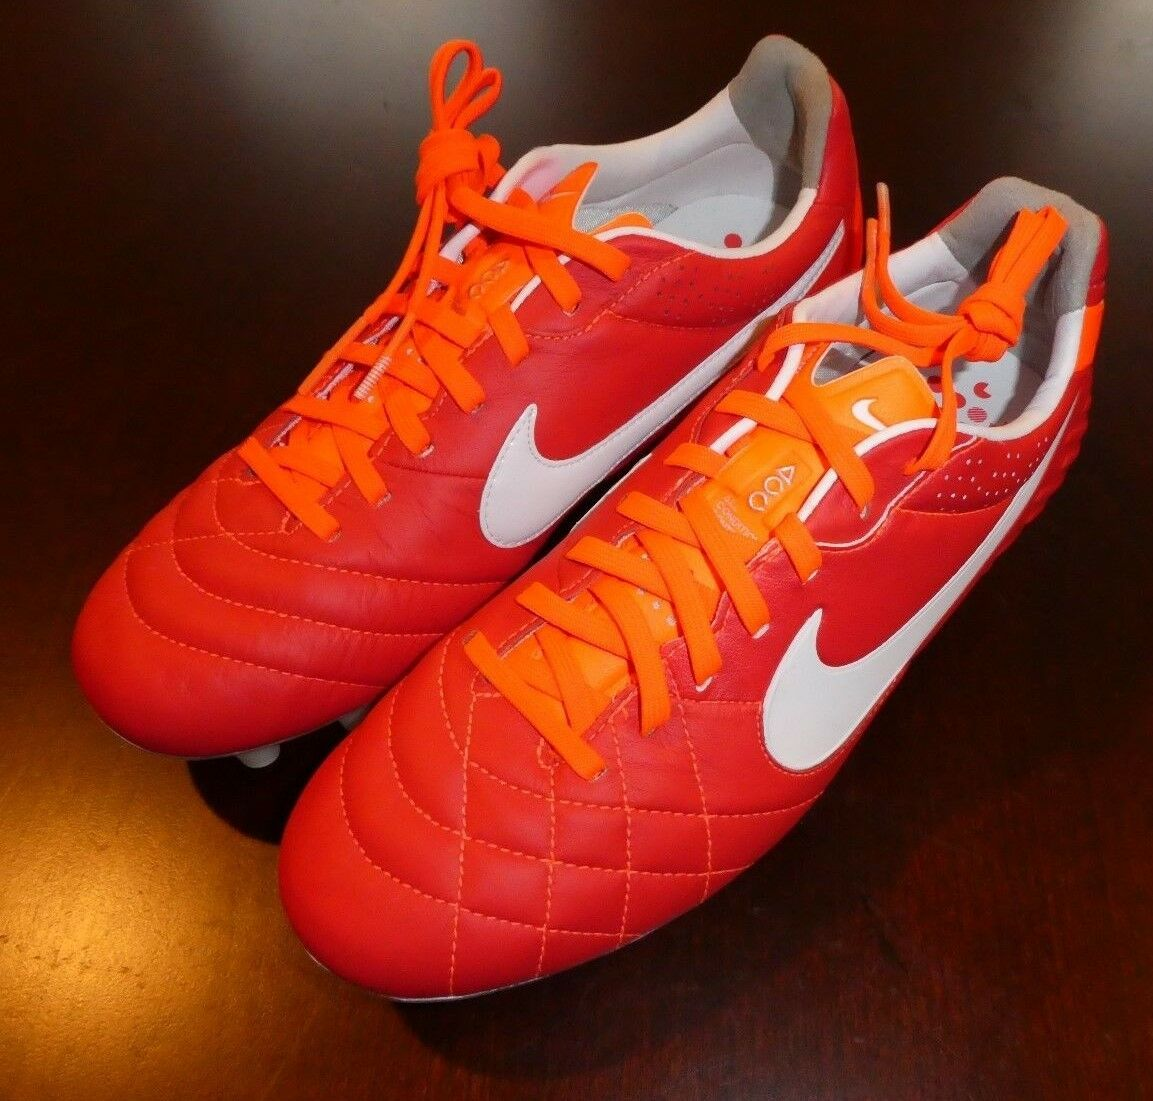 Nike Tiempo Legend IV FG Soccer Cleats new shoes 454316 454316 454316 618 size 6 5d8beb